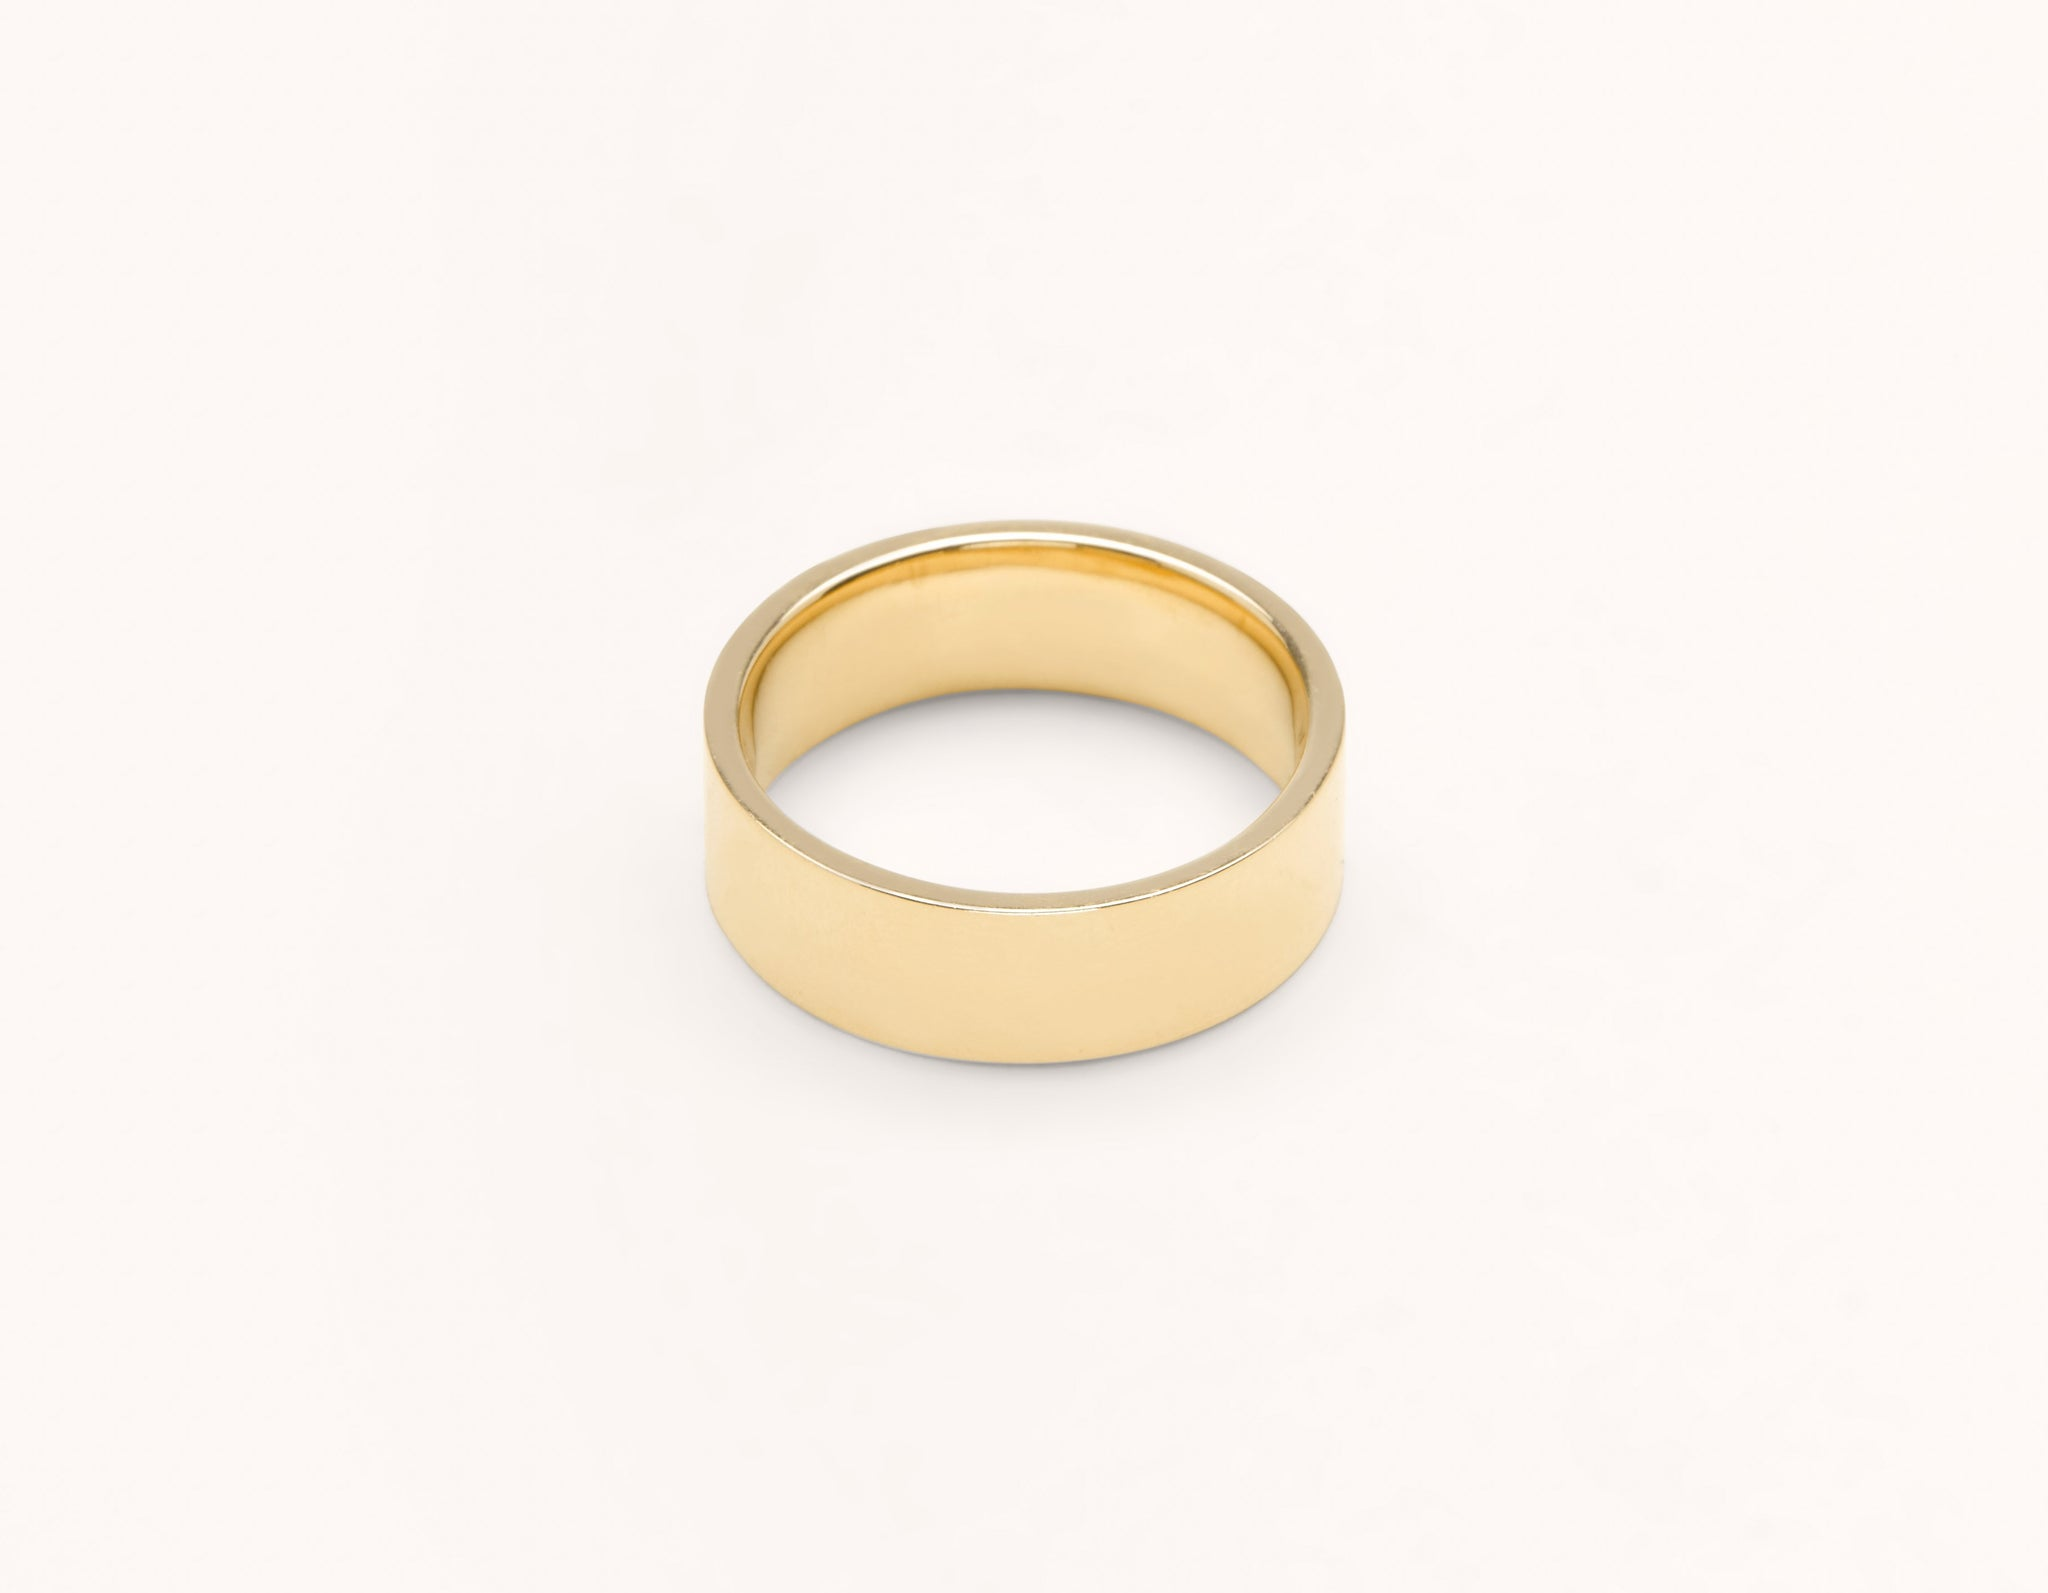 Simple modern 18k solid yellow gold 6 mm Flat men's women's Wedding Band Vrai & Oro